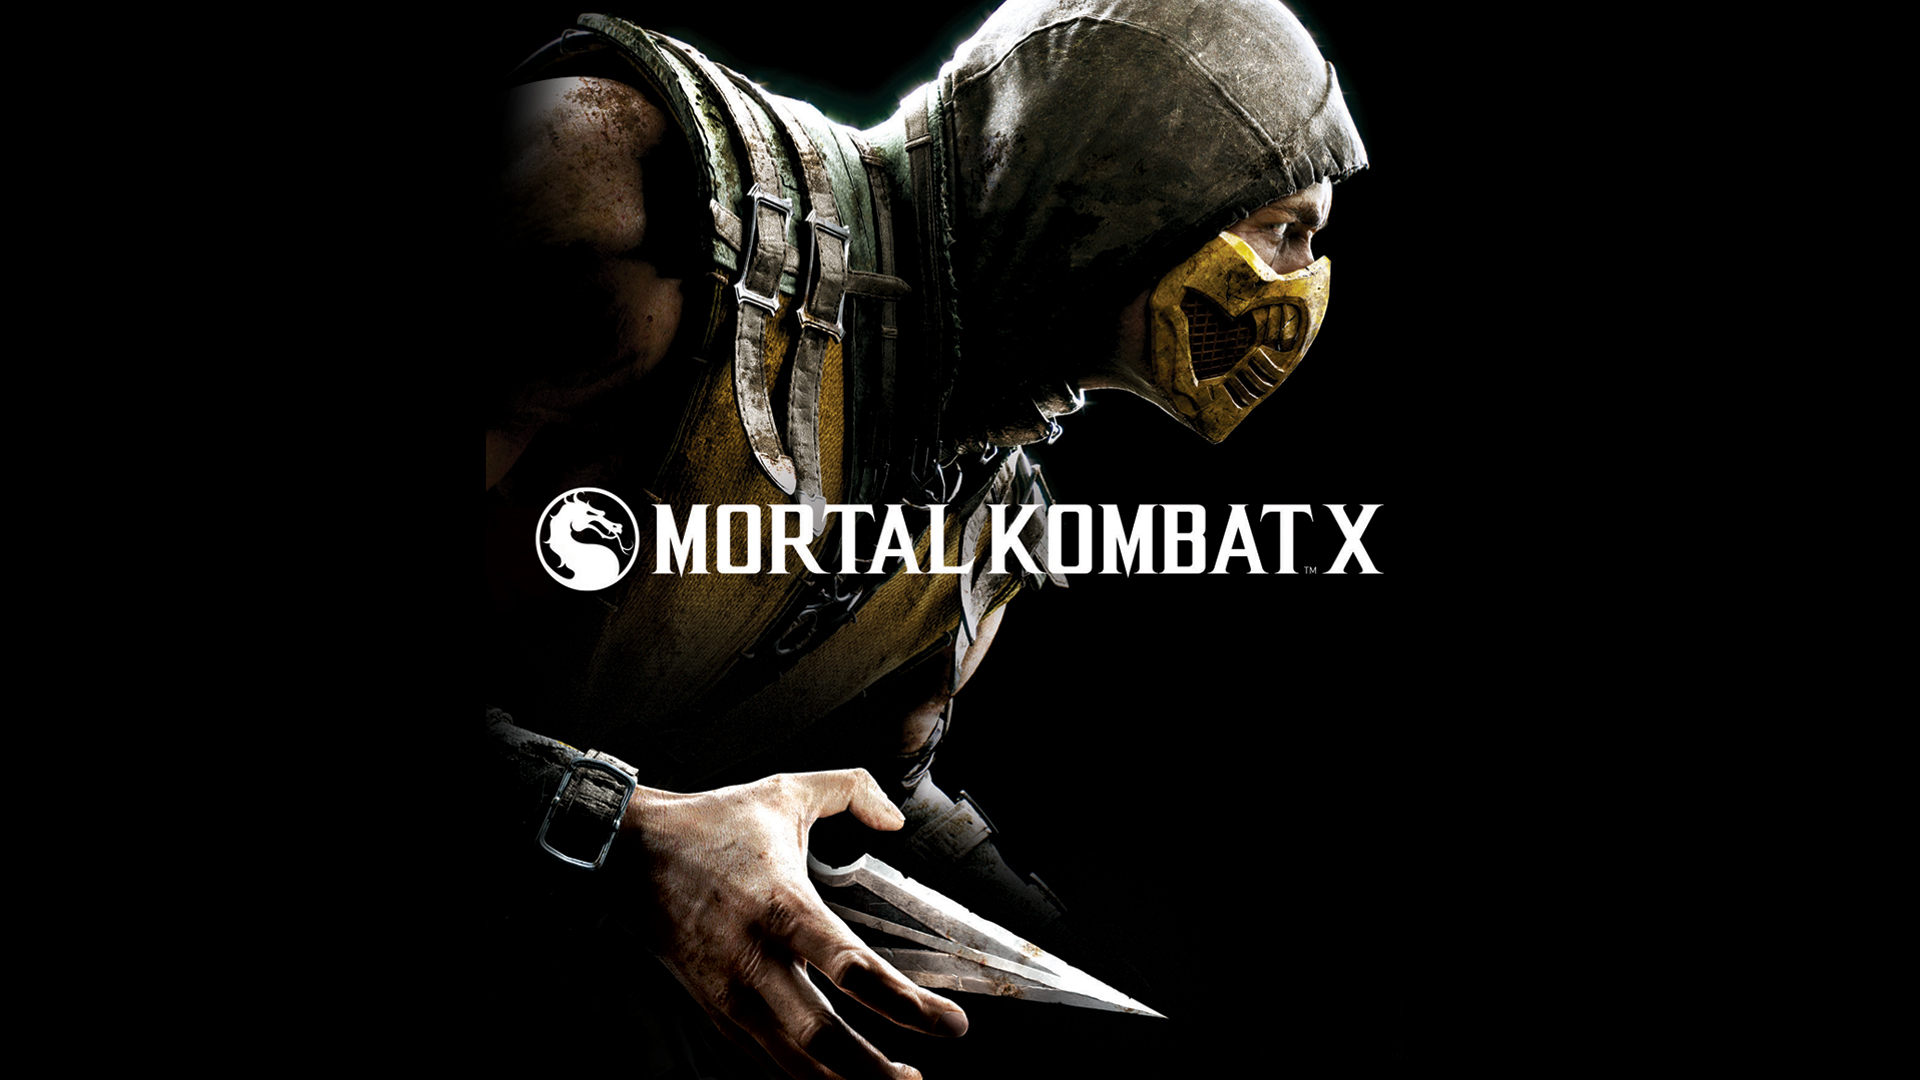 Scorpion Mortal Kombat X Game HD Wallpaper